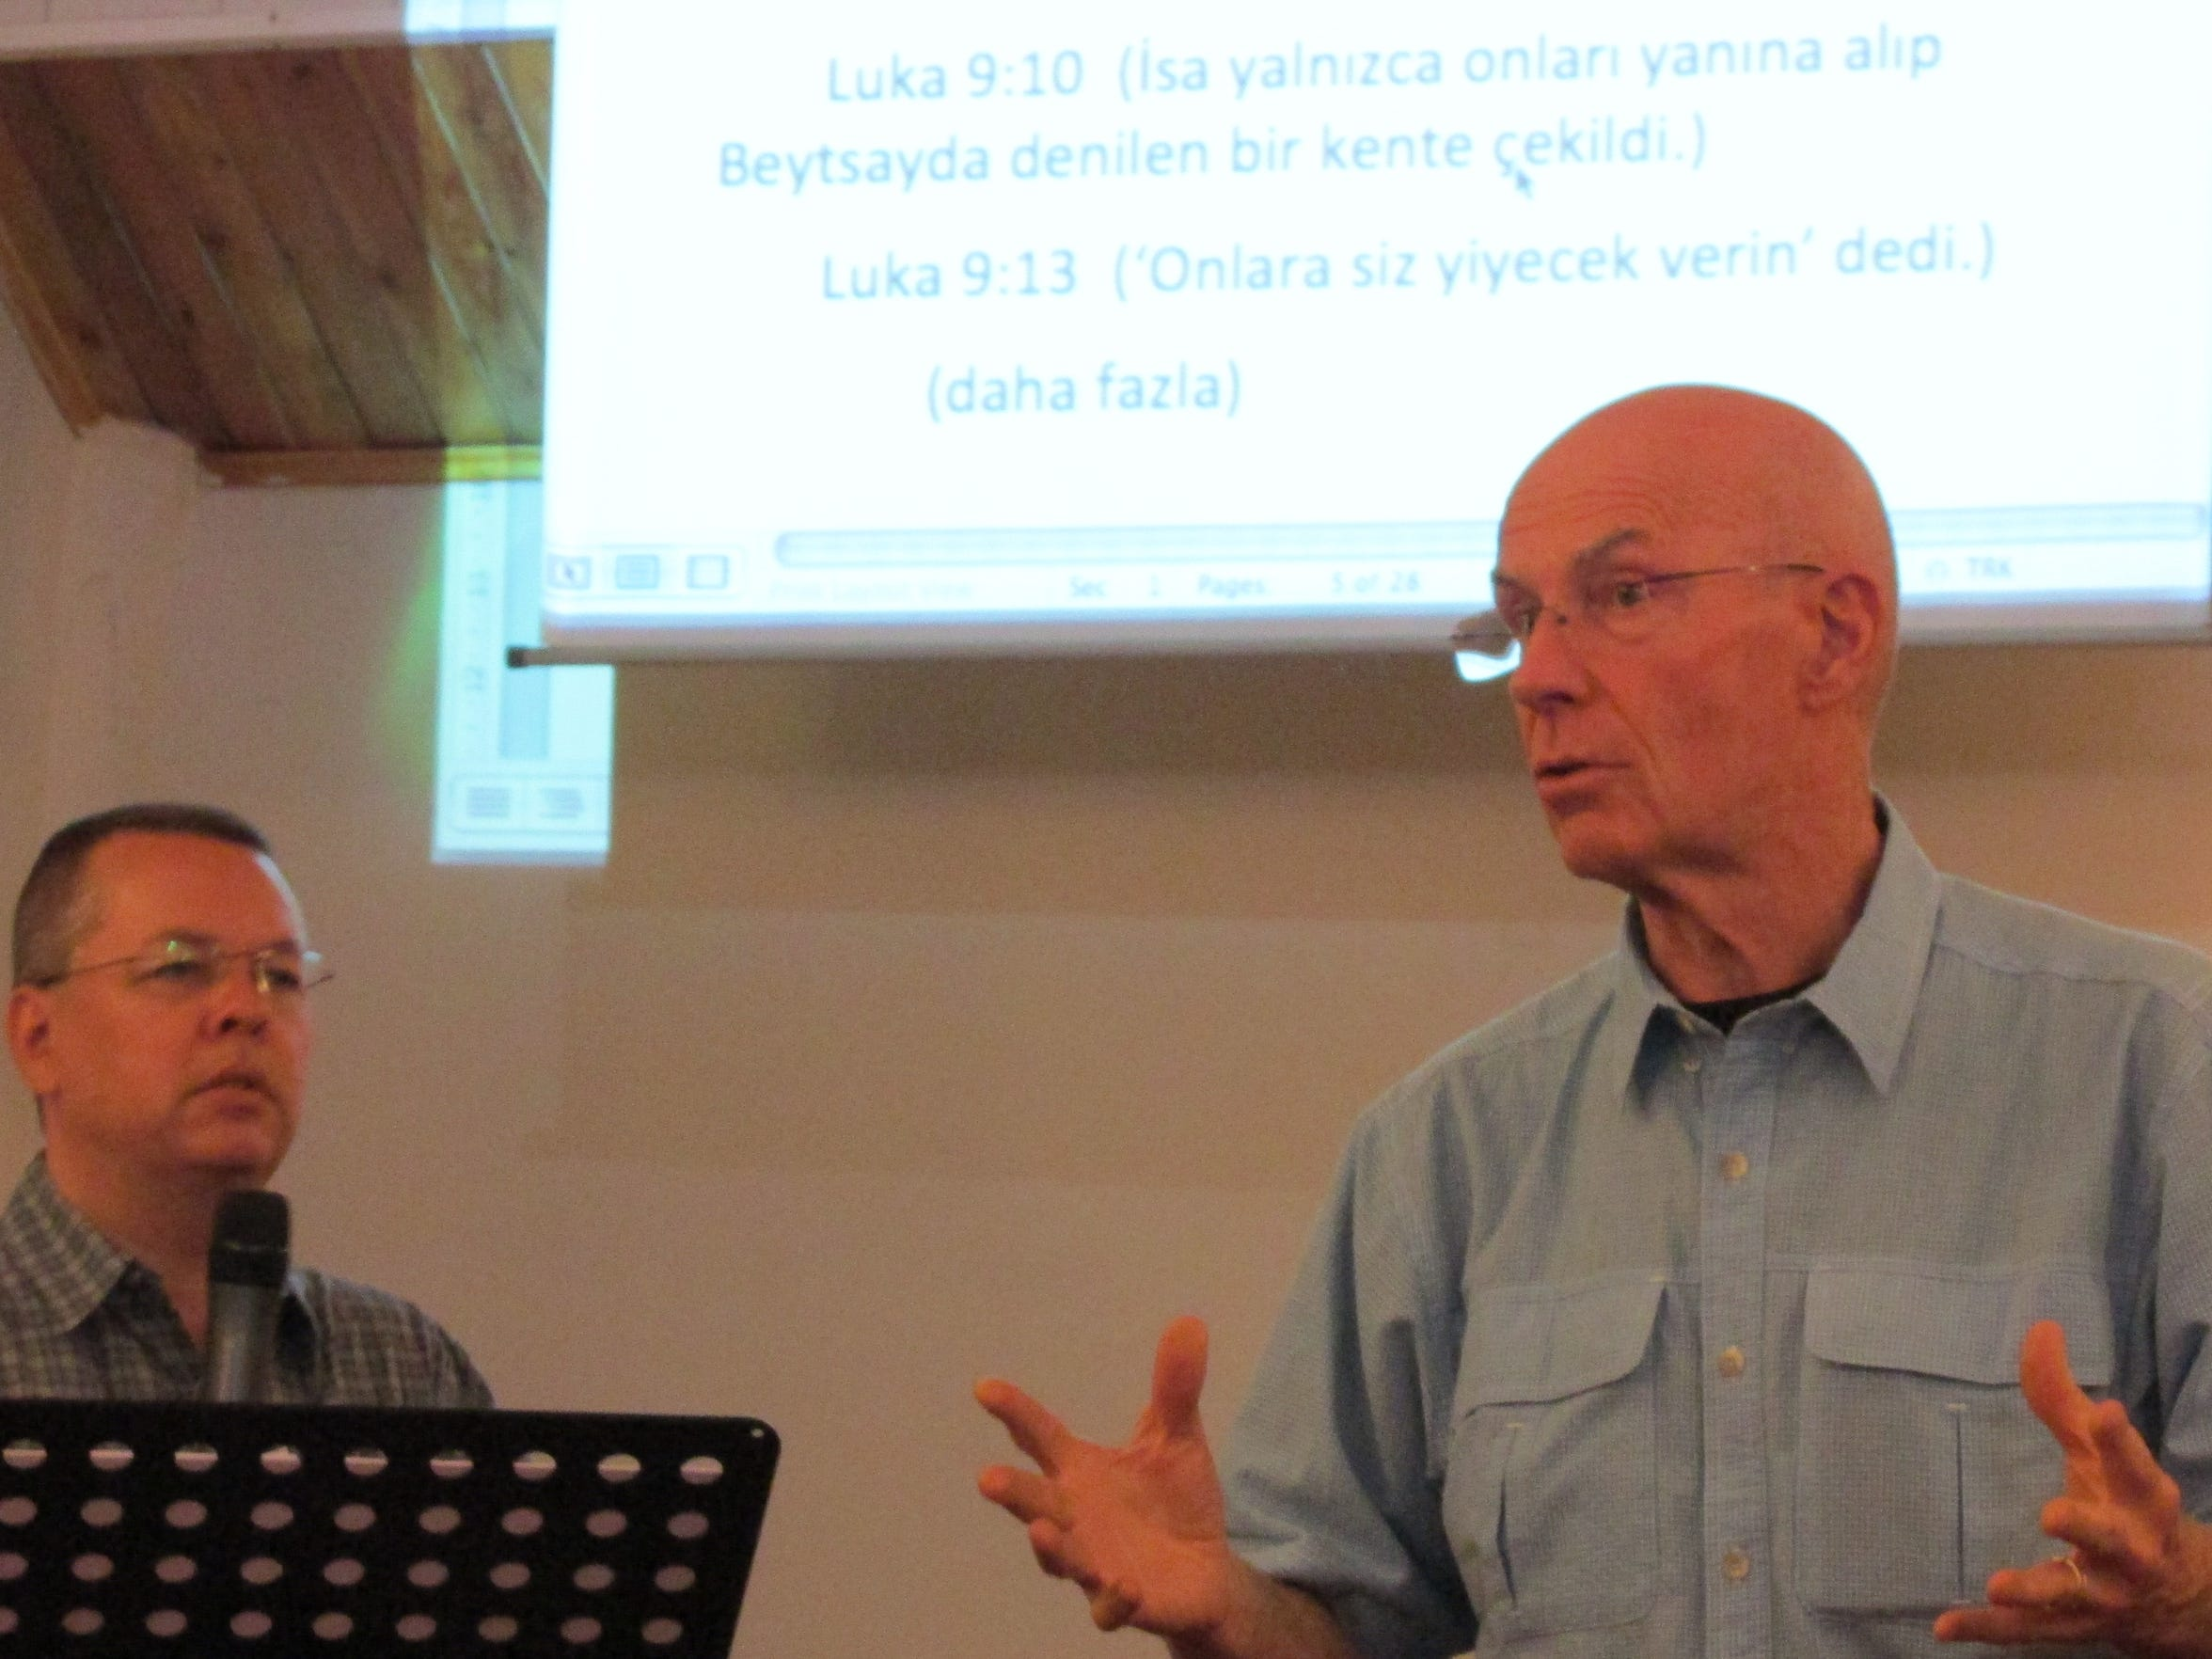 The Rev. Andrew Brunson, left, translates, as John Sullivan speaks at Resurrection Church in Izmir, Turkey, in 2014. Sullivan was one of eight members of Christ Community Church in Montreat who visited Izmir in 2014.